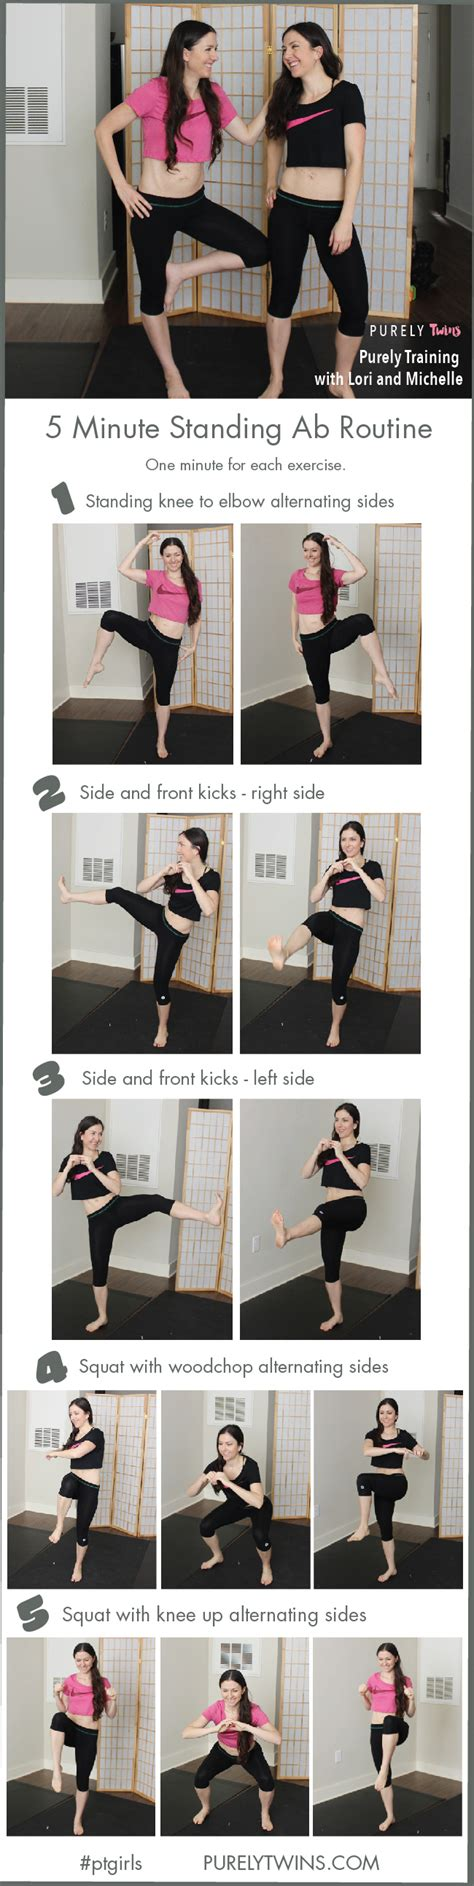 10 Minute No Floor Workout - 5 minute standing ab workout routine